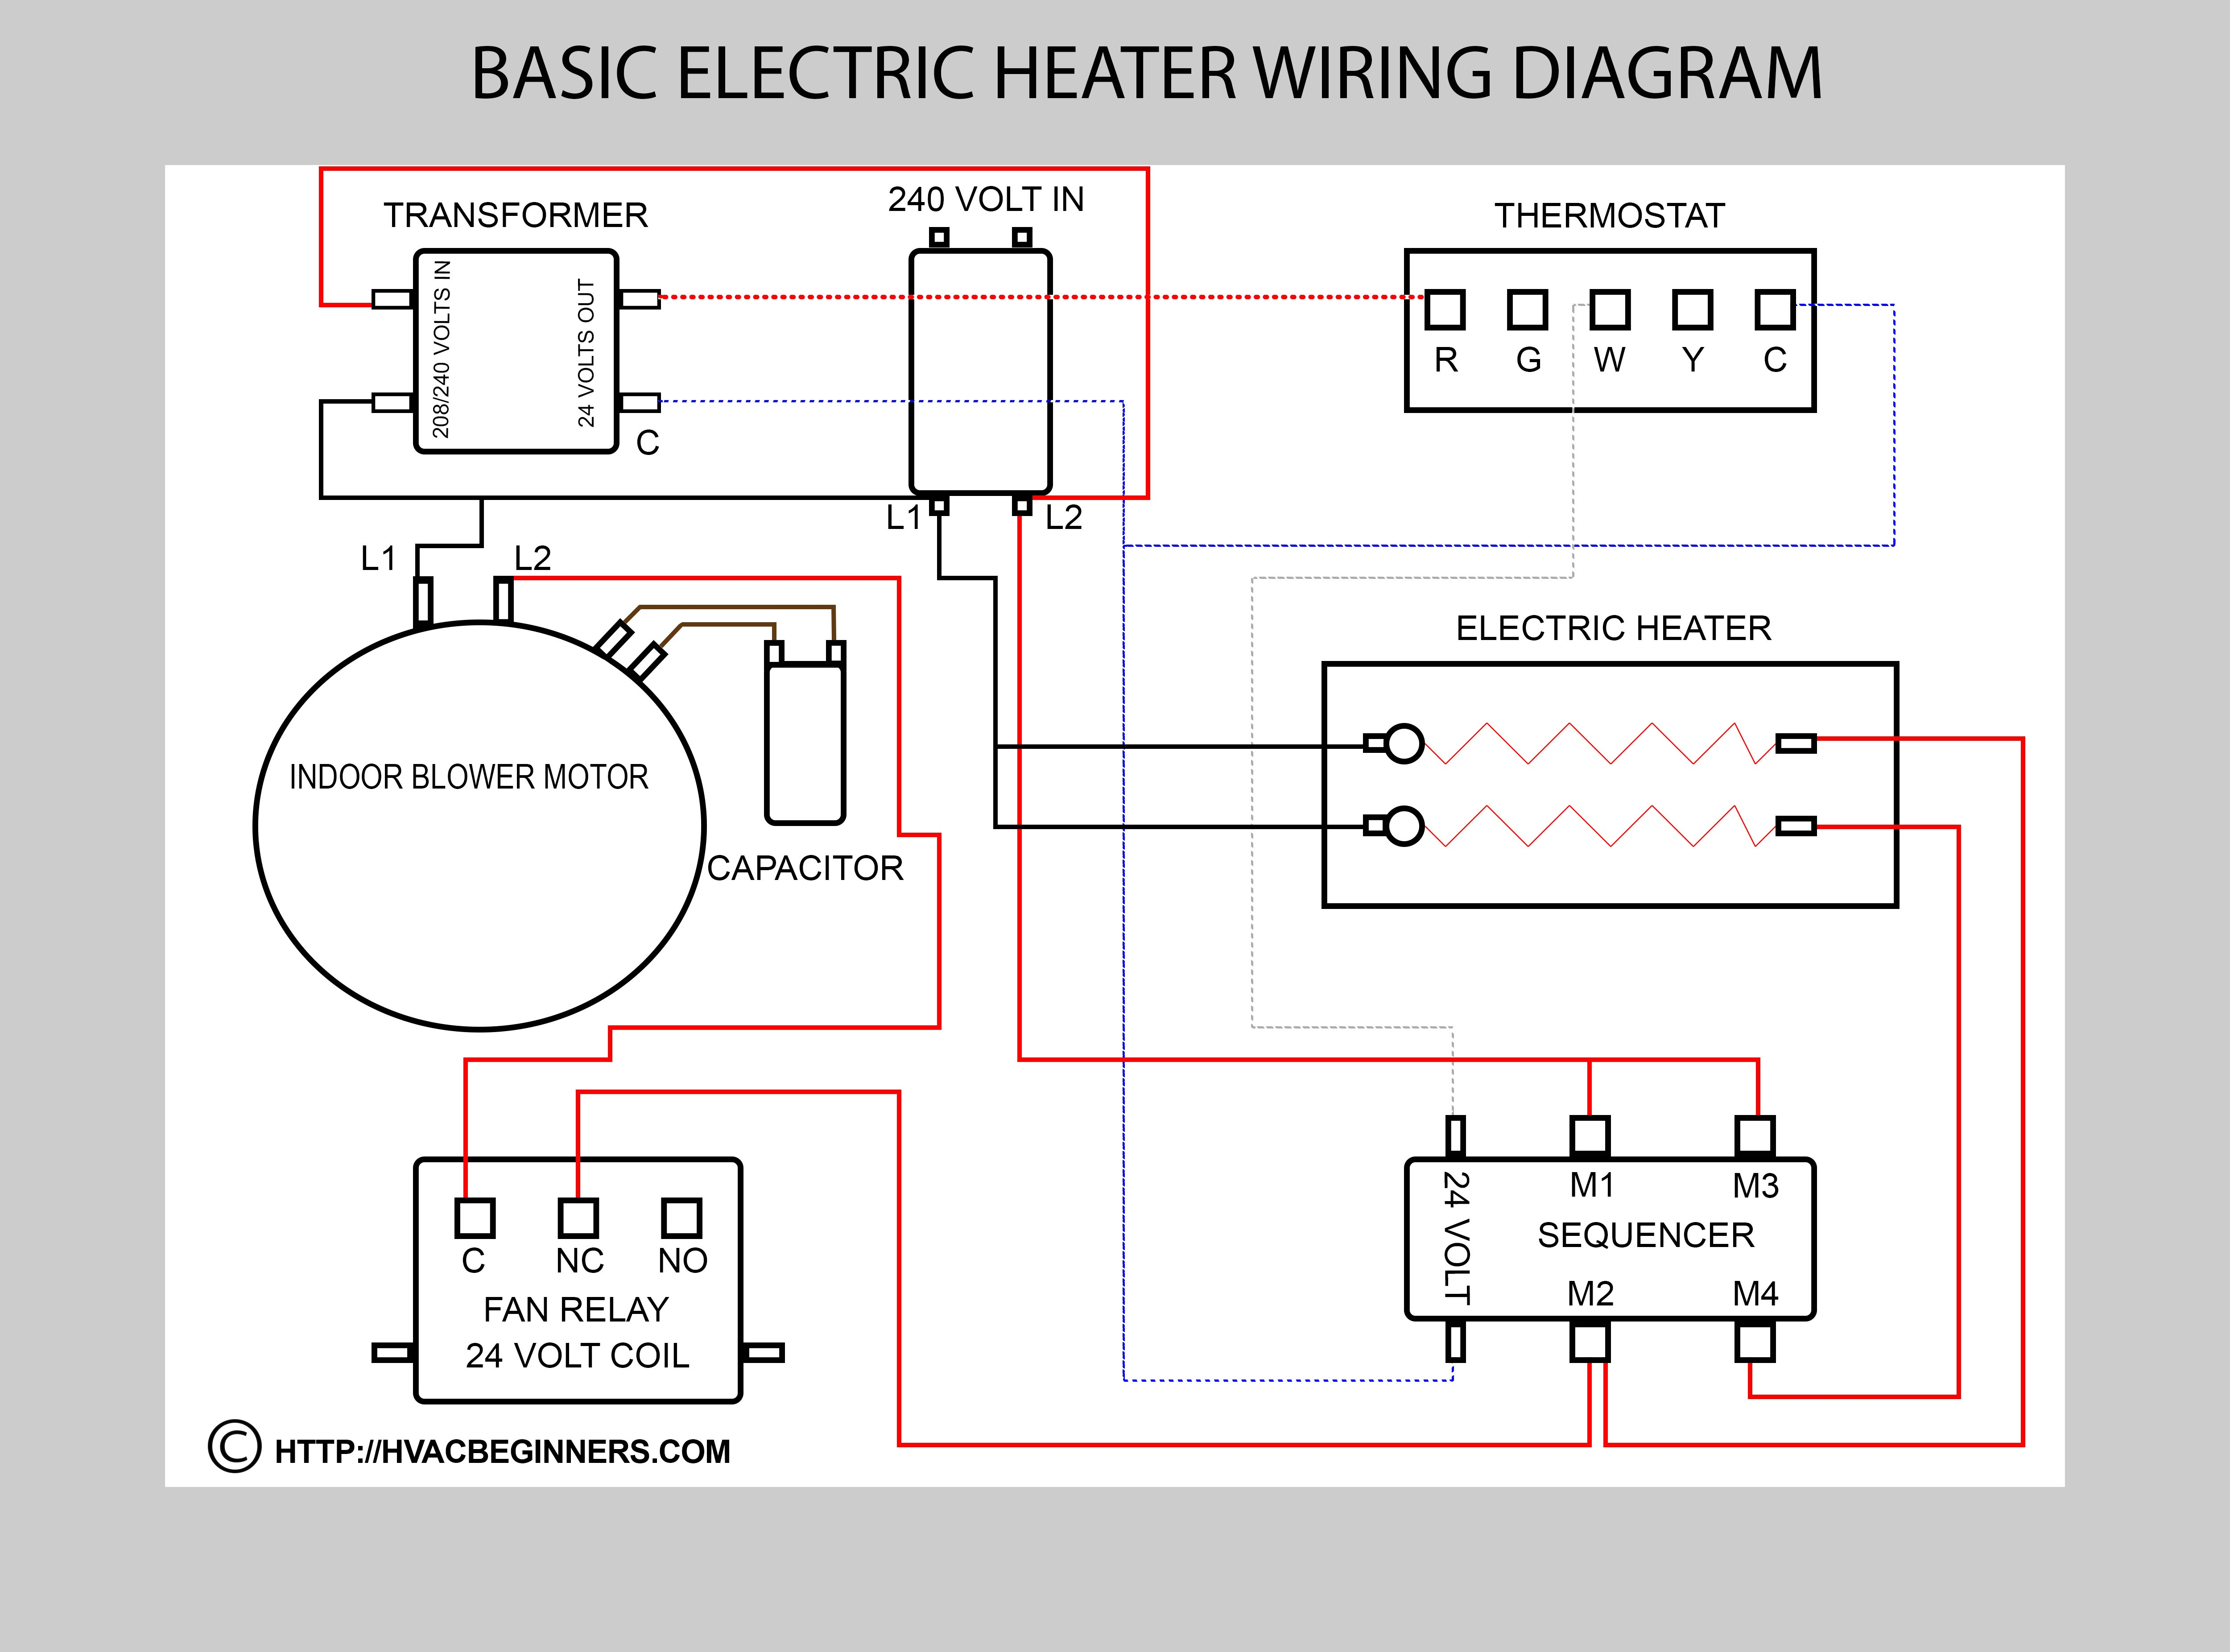 Typical Unit Heater Wiring Diagram Detailed Schematics Data Hvac Training On Electric Heaters For Beginners Modine Hot Dawg Parts